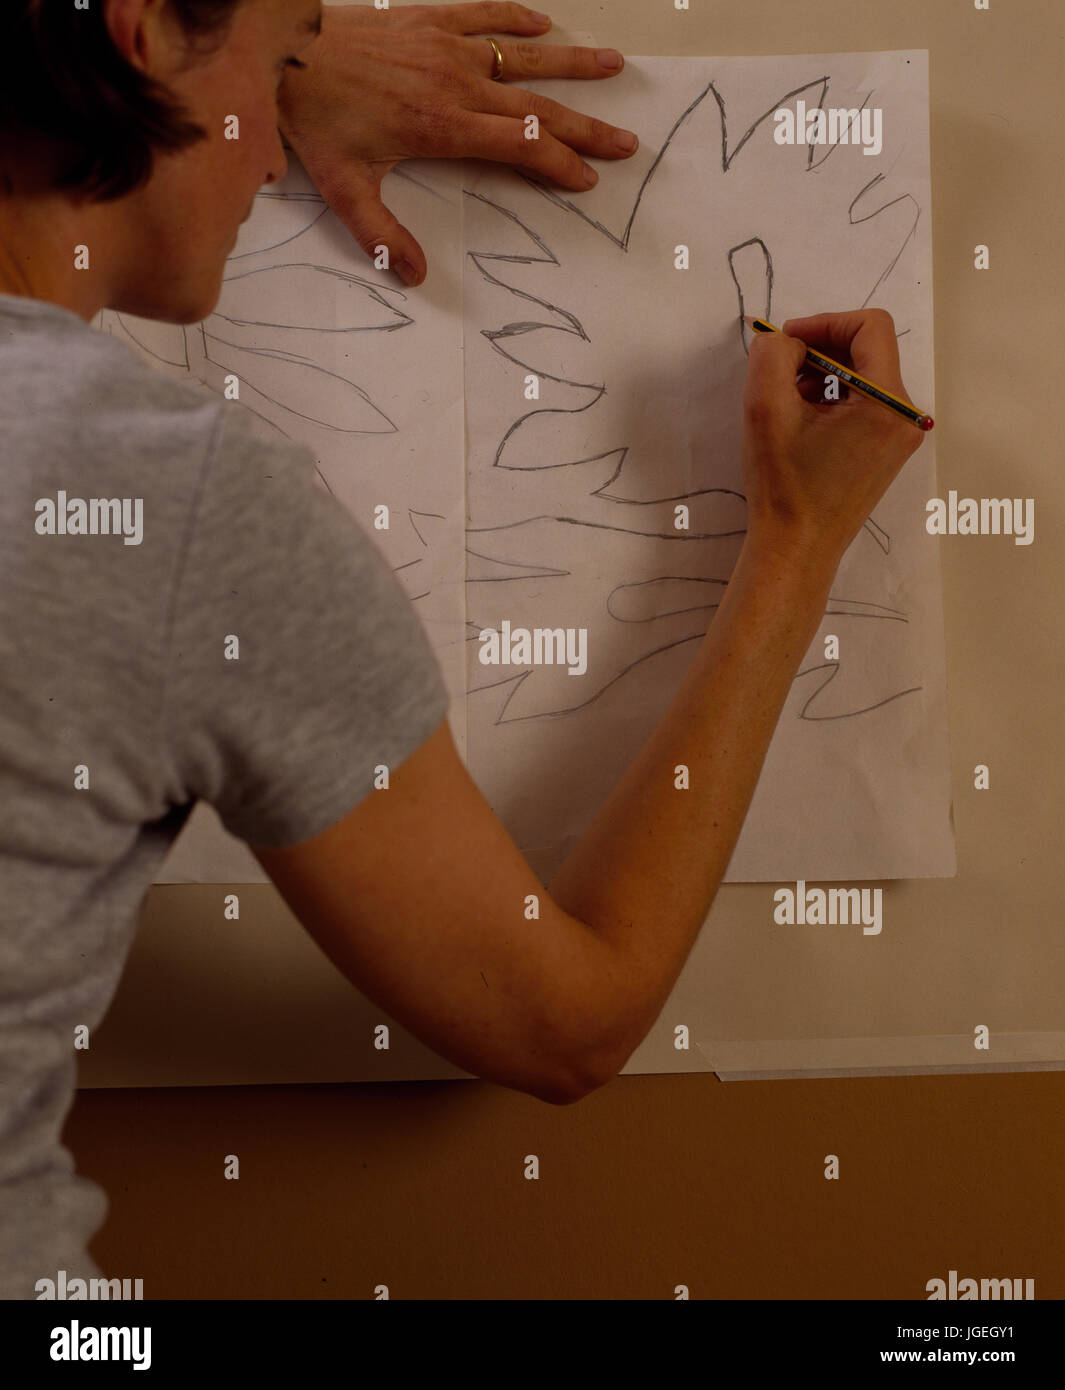 Woman tracing design for wallpaper frieze - Stock Image